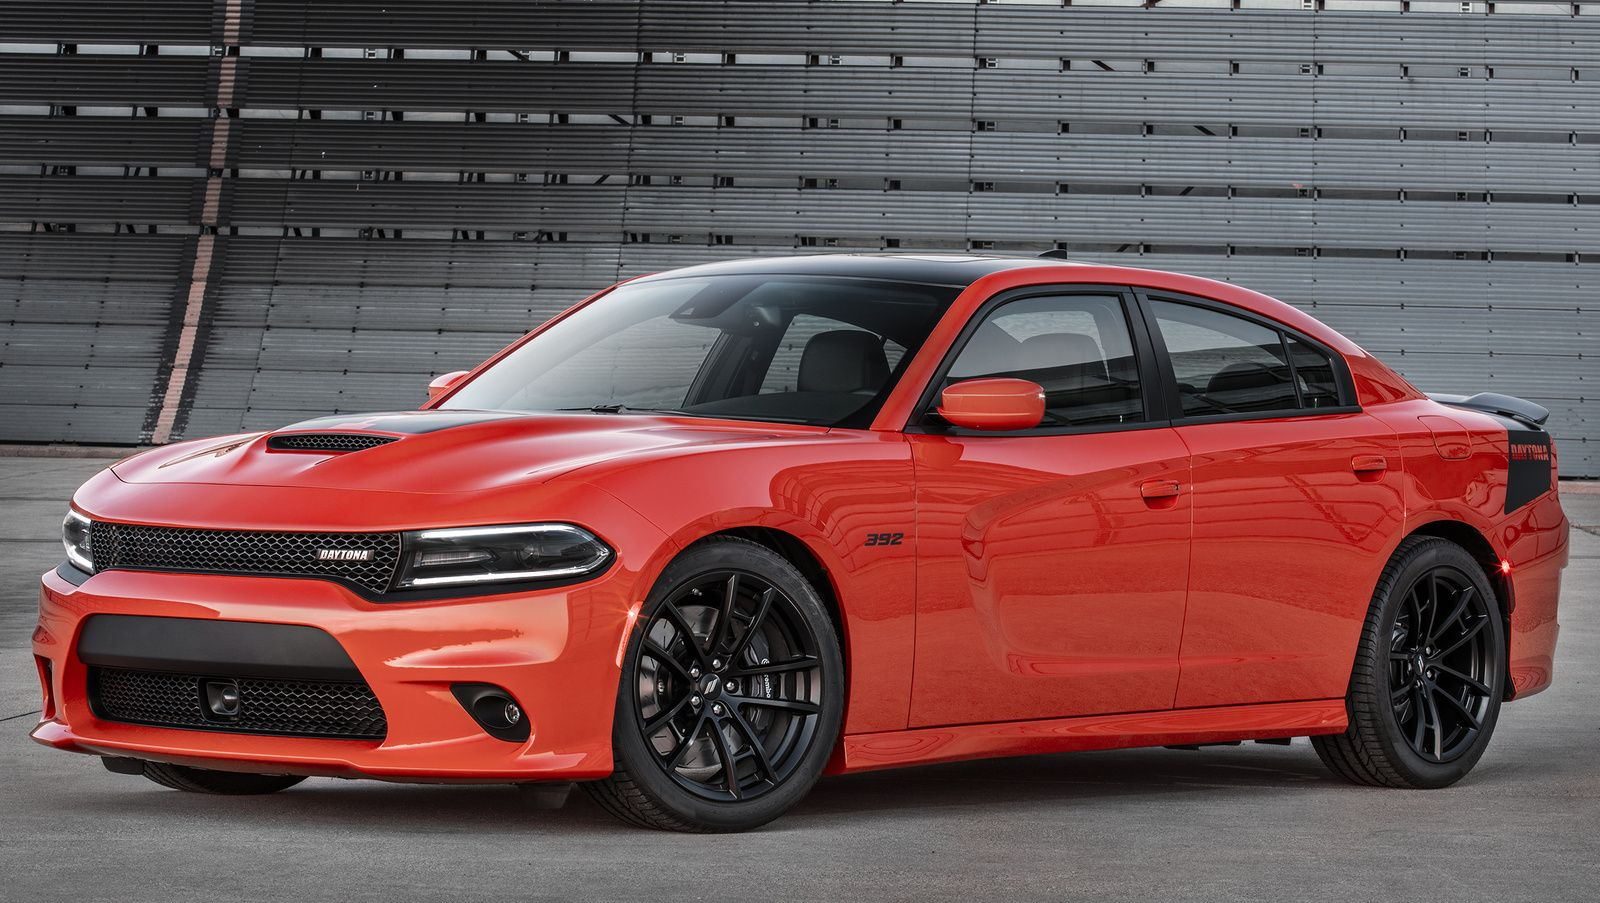 2016 2017 Dodge Charger For Sale In Your Area Cargurus Dodge Automobil Neue Autos